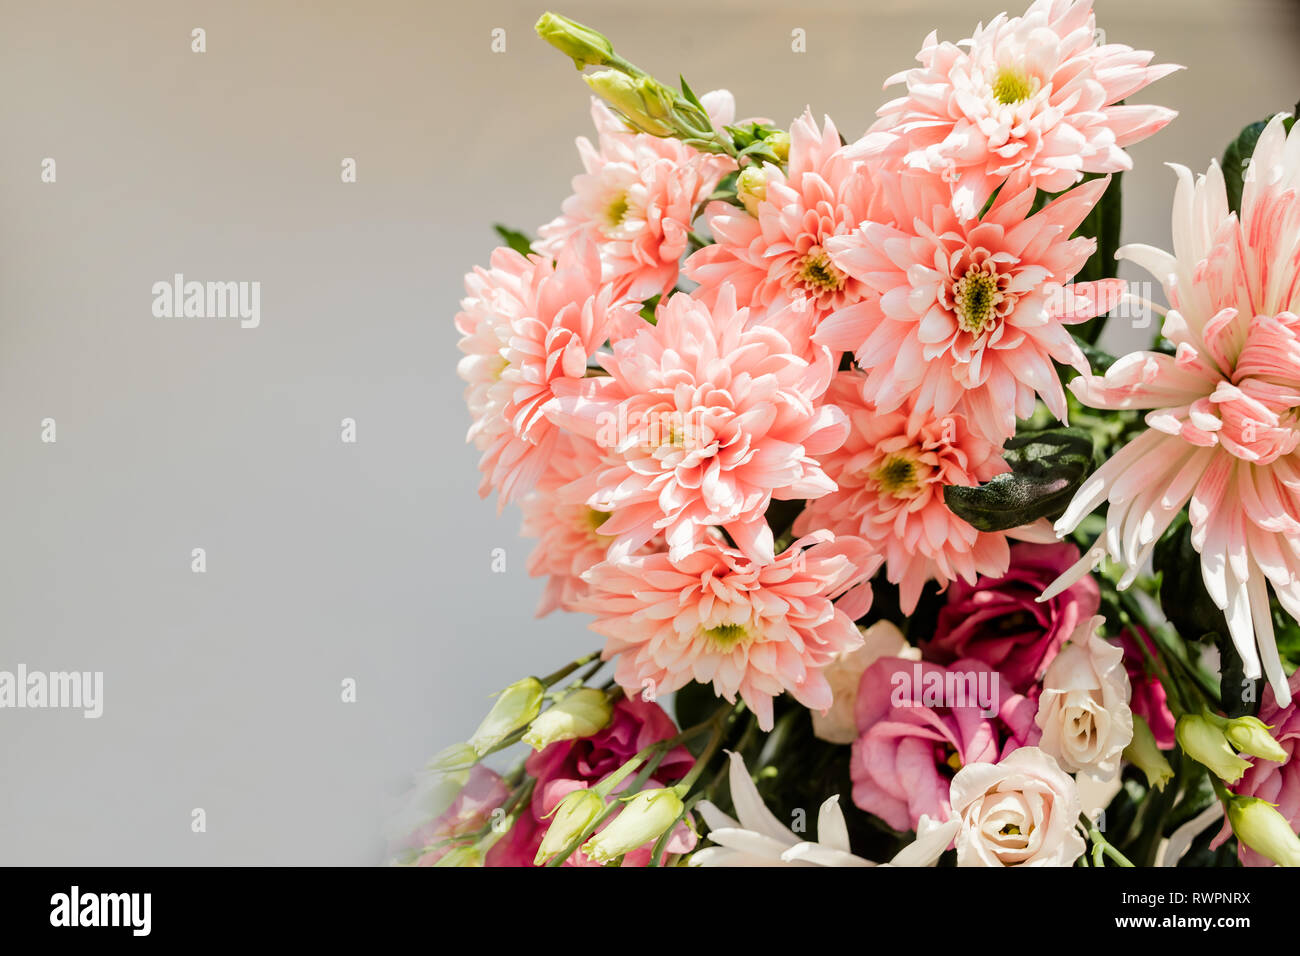 Very beautiful tender blossoming bouquet of fresh hydrangea, eustoma, roses, eucalyptus flowers in pastel pink and cream colours on the grey wall Stock Photo